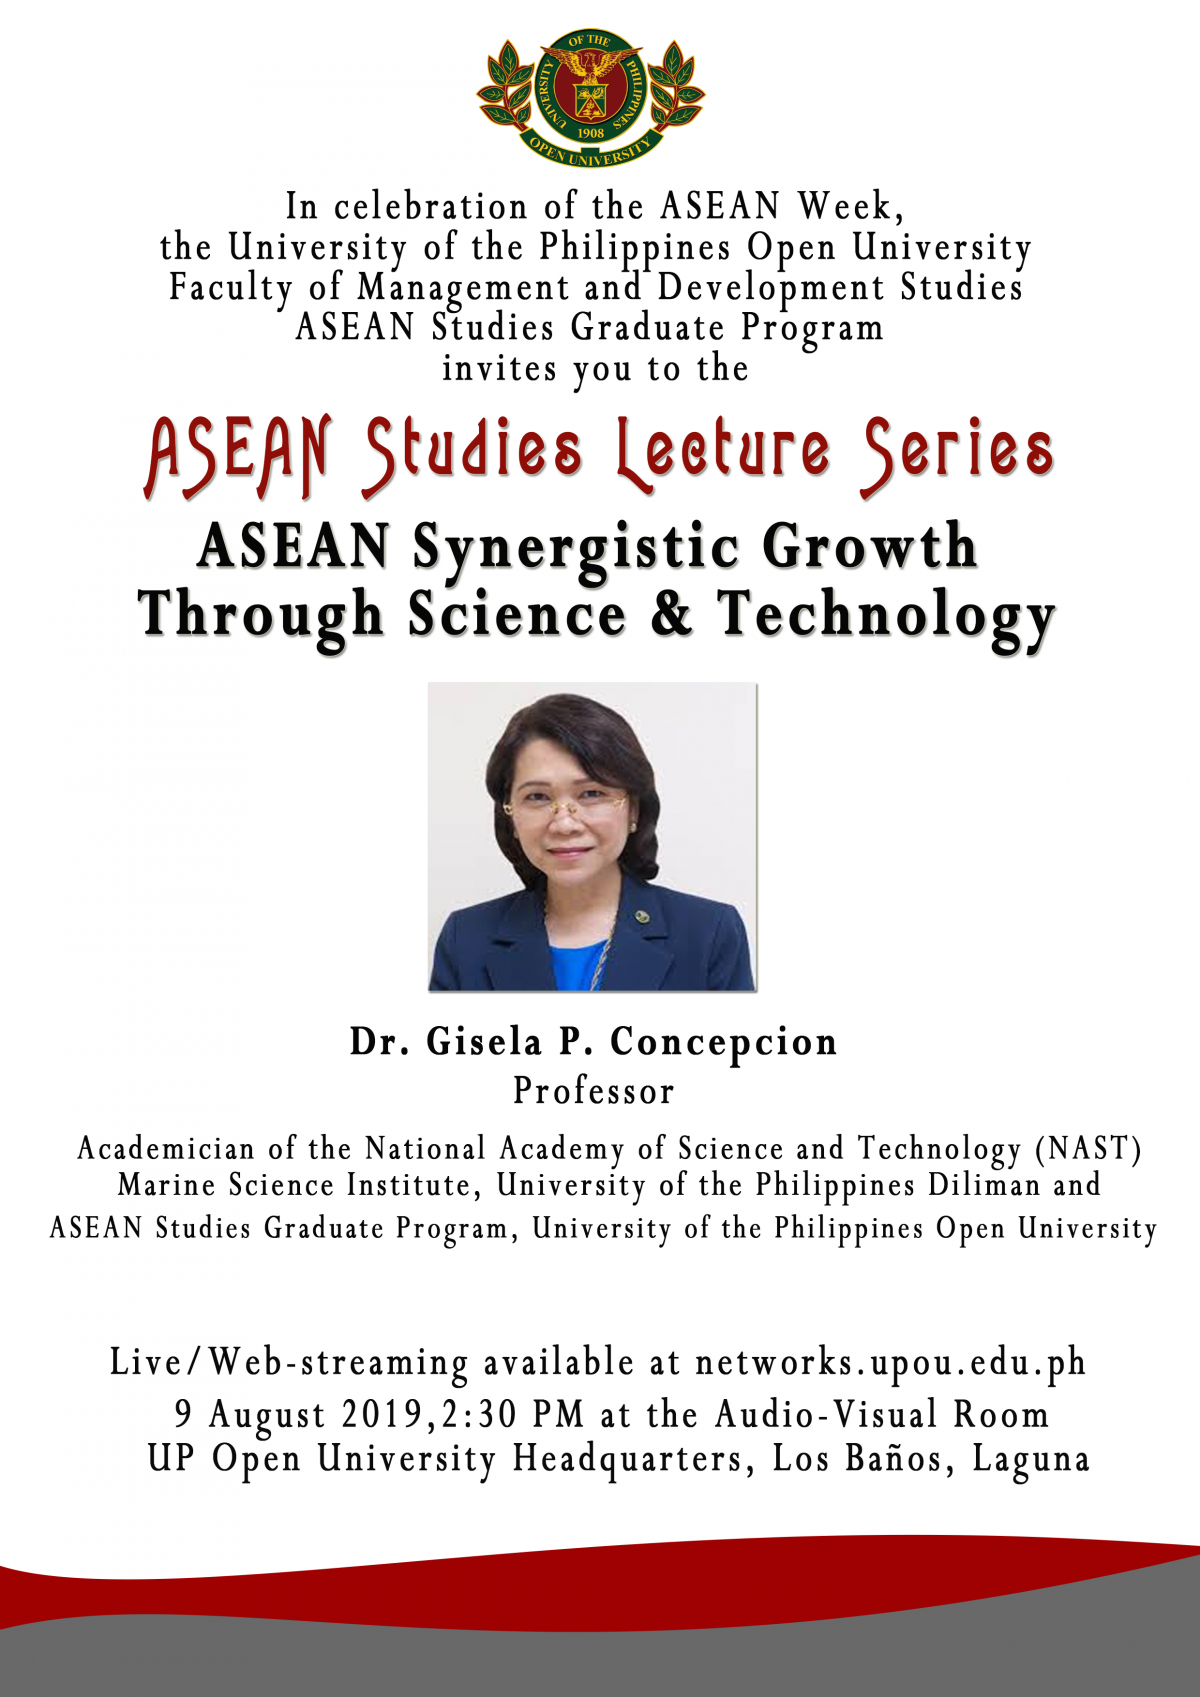 """Dr. Gisela P. Concepcion, Program Faculty of the ASEAN Studies Graduate Program will give a talk on """"ASEAN Synergistic Growth Through Science and Technology."""""""